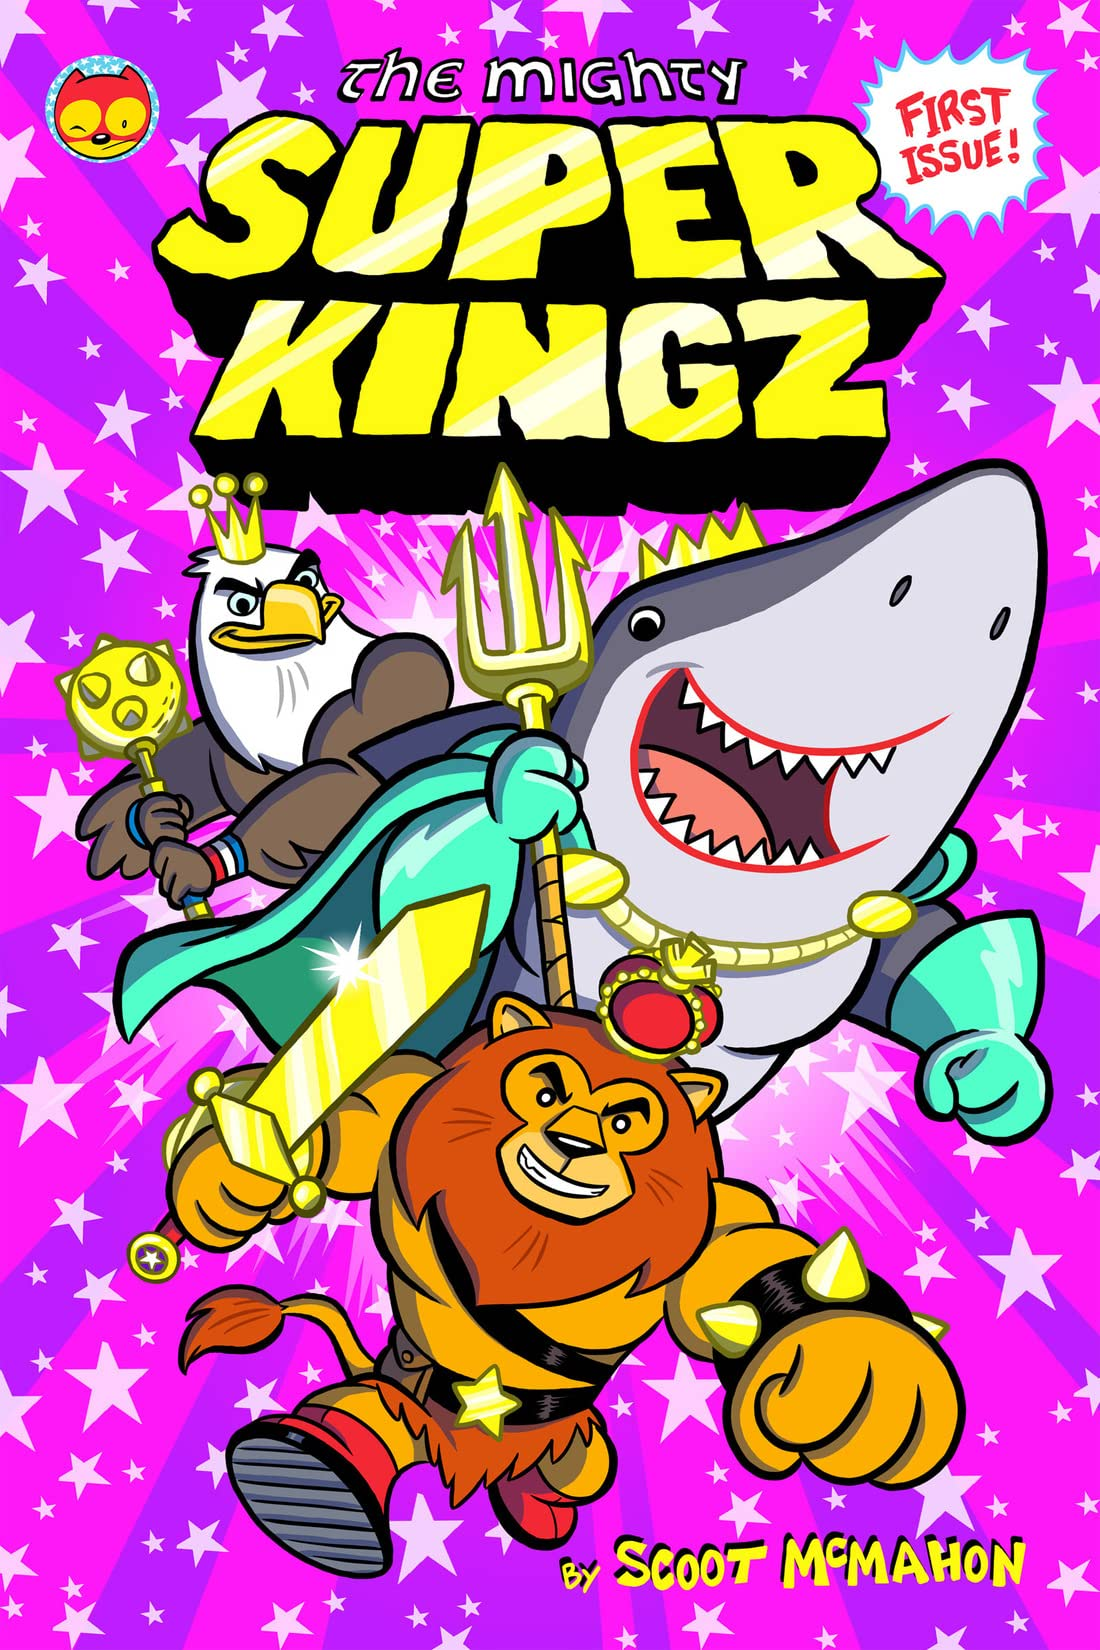 The Mighty Super Kingz #1